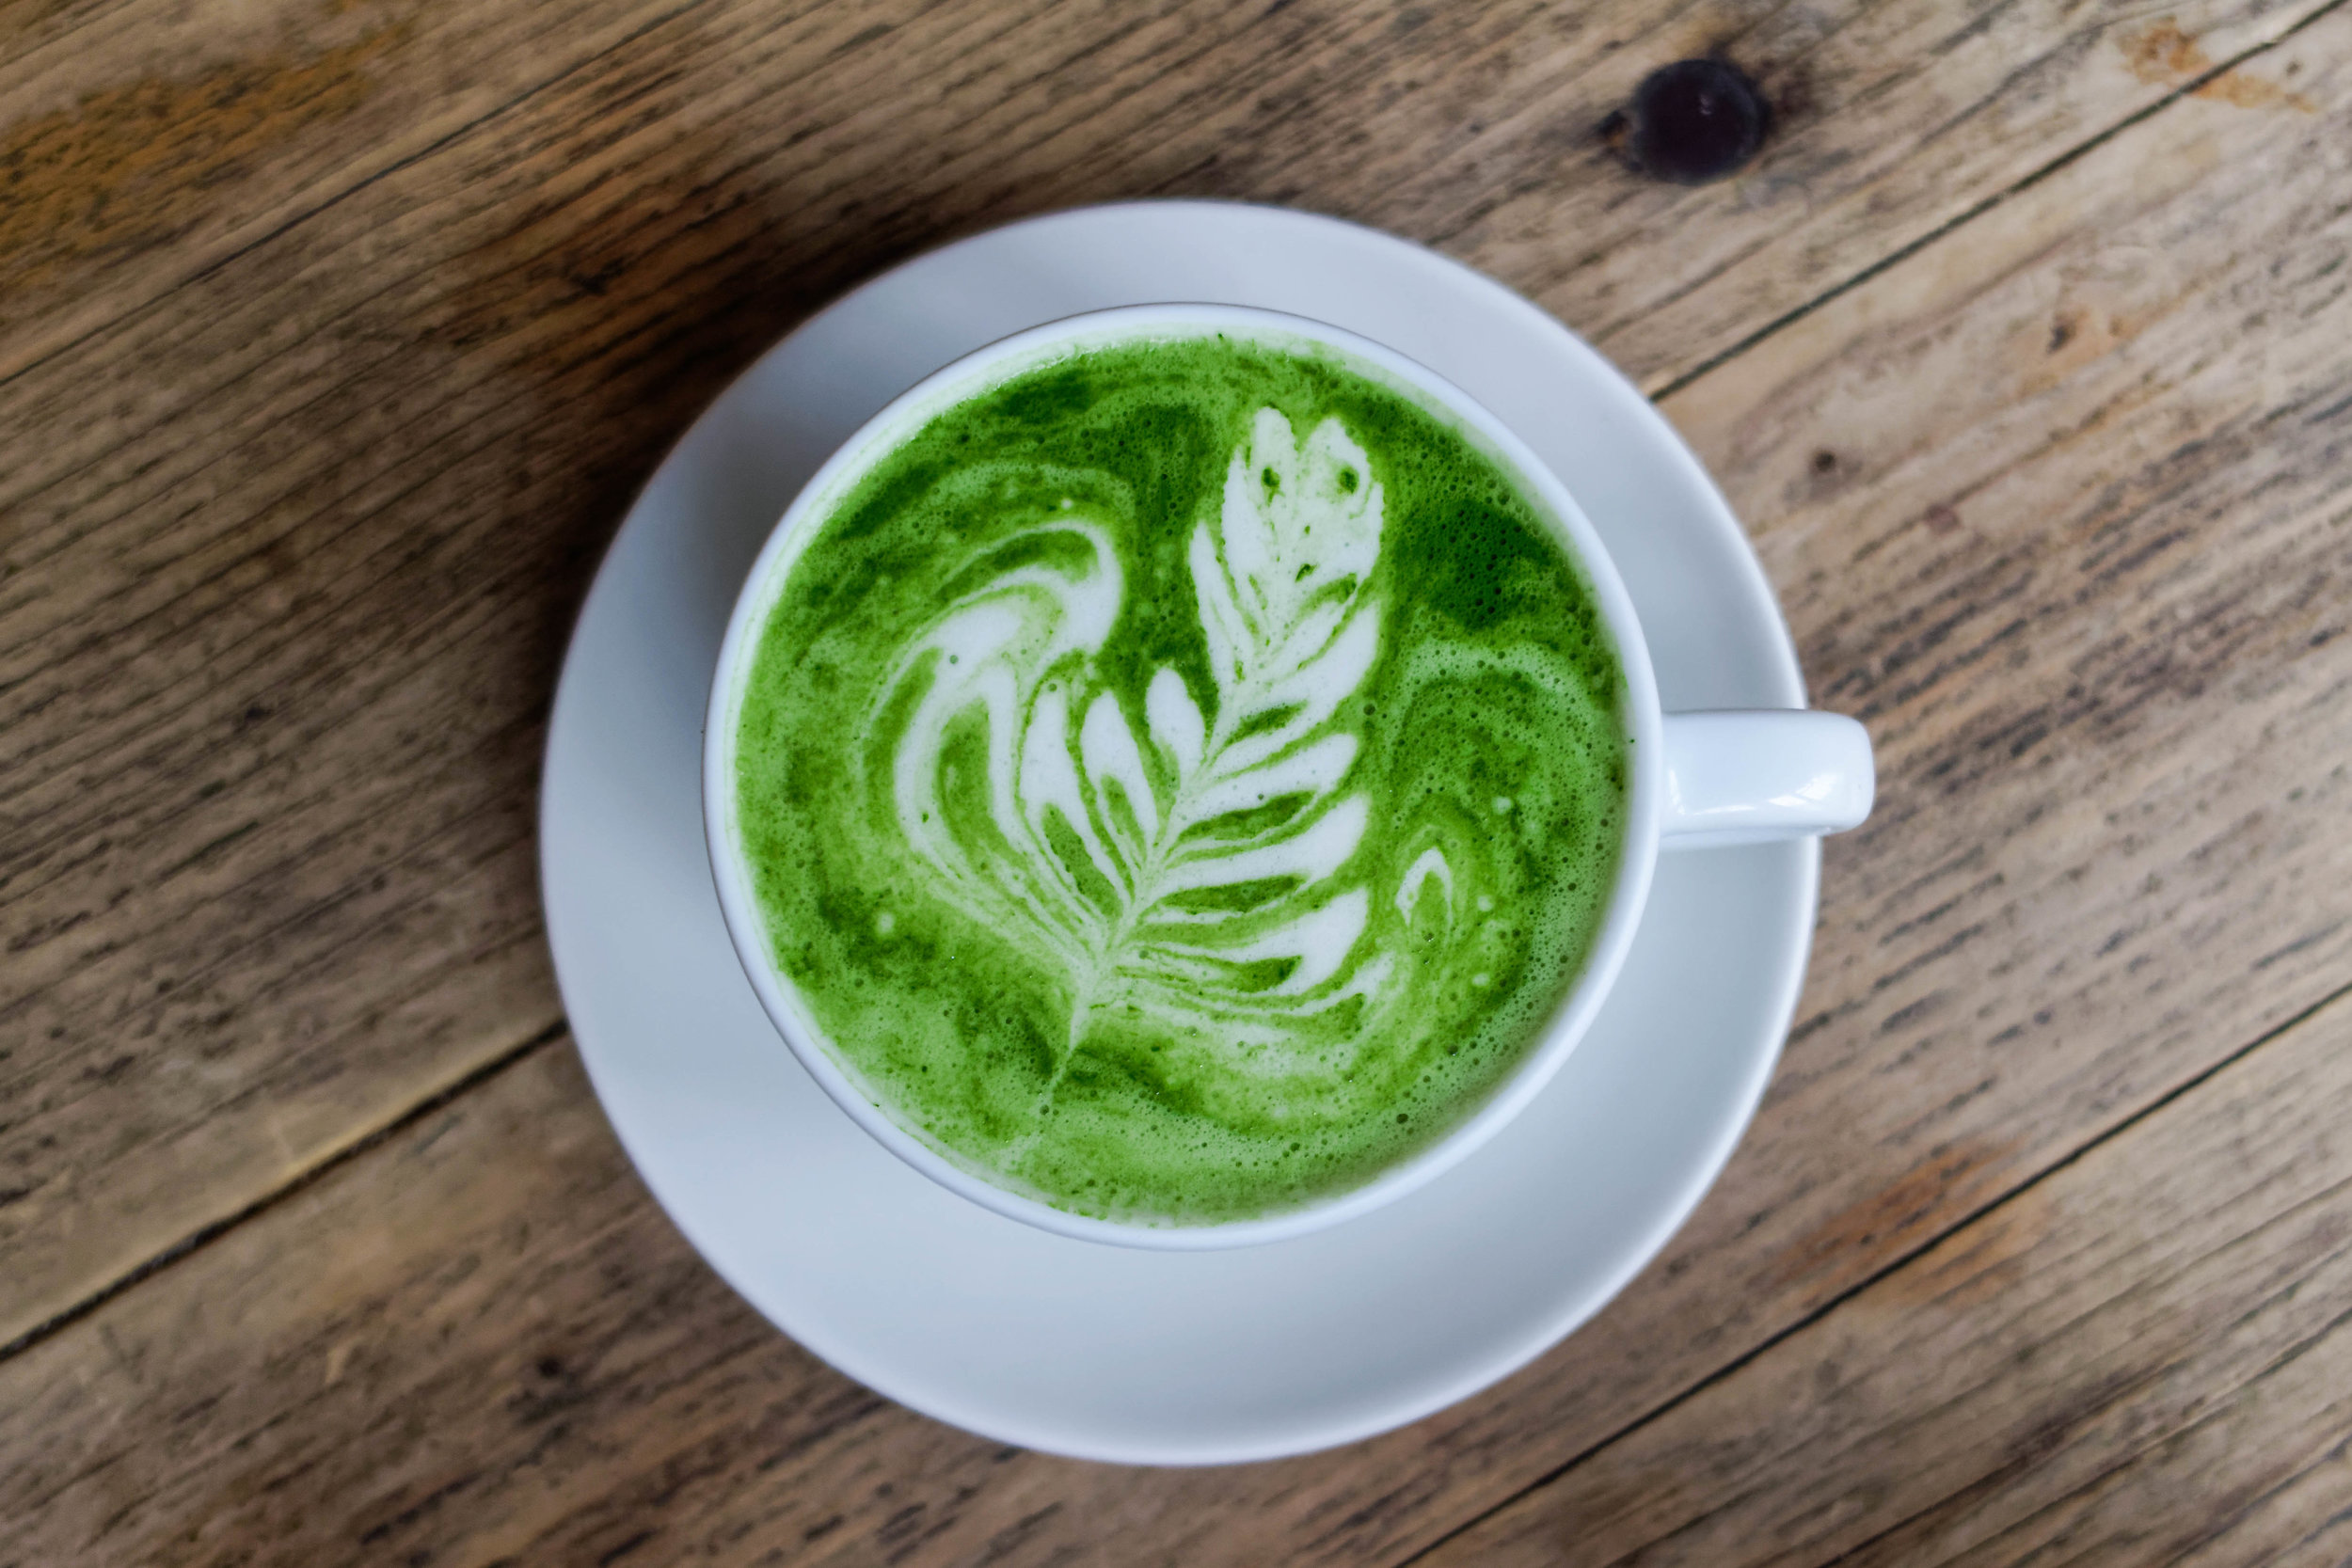 If you're not a huge fan of coffee, try the matcha latte, a green tea latte that packs quite a caffeine punch. It's also bright green—very seasonally appropriate!